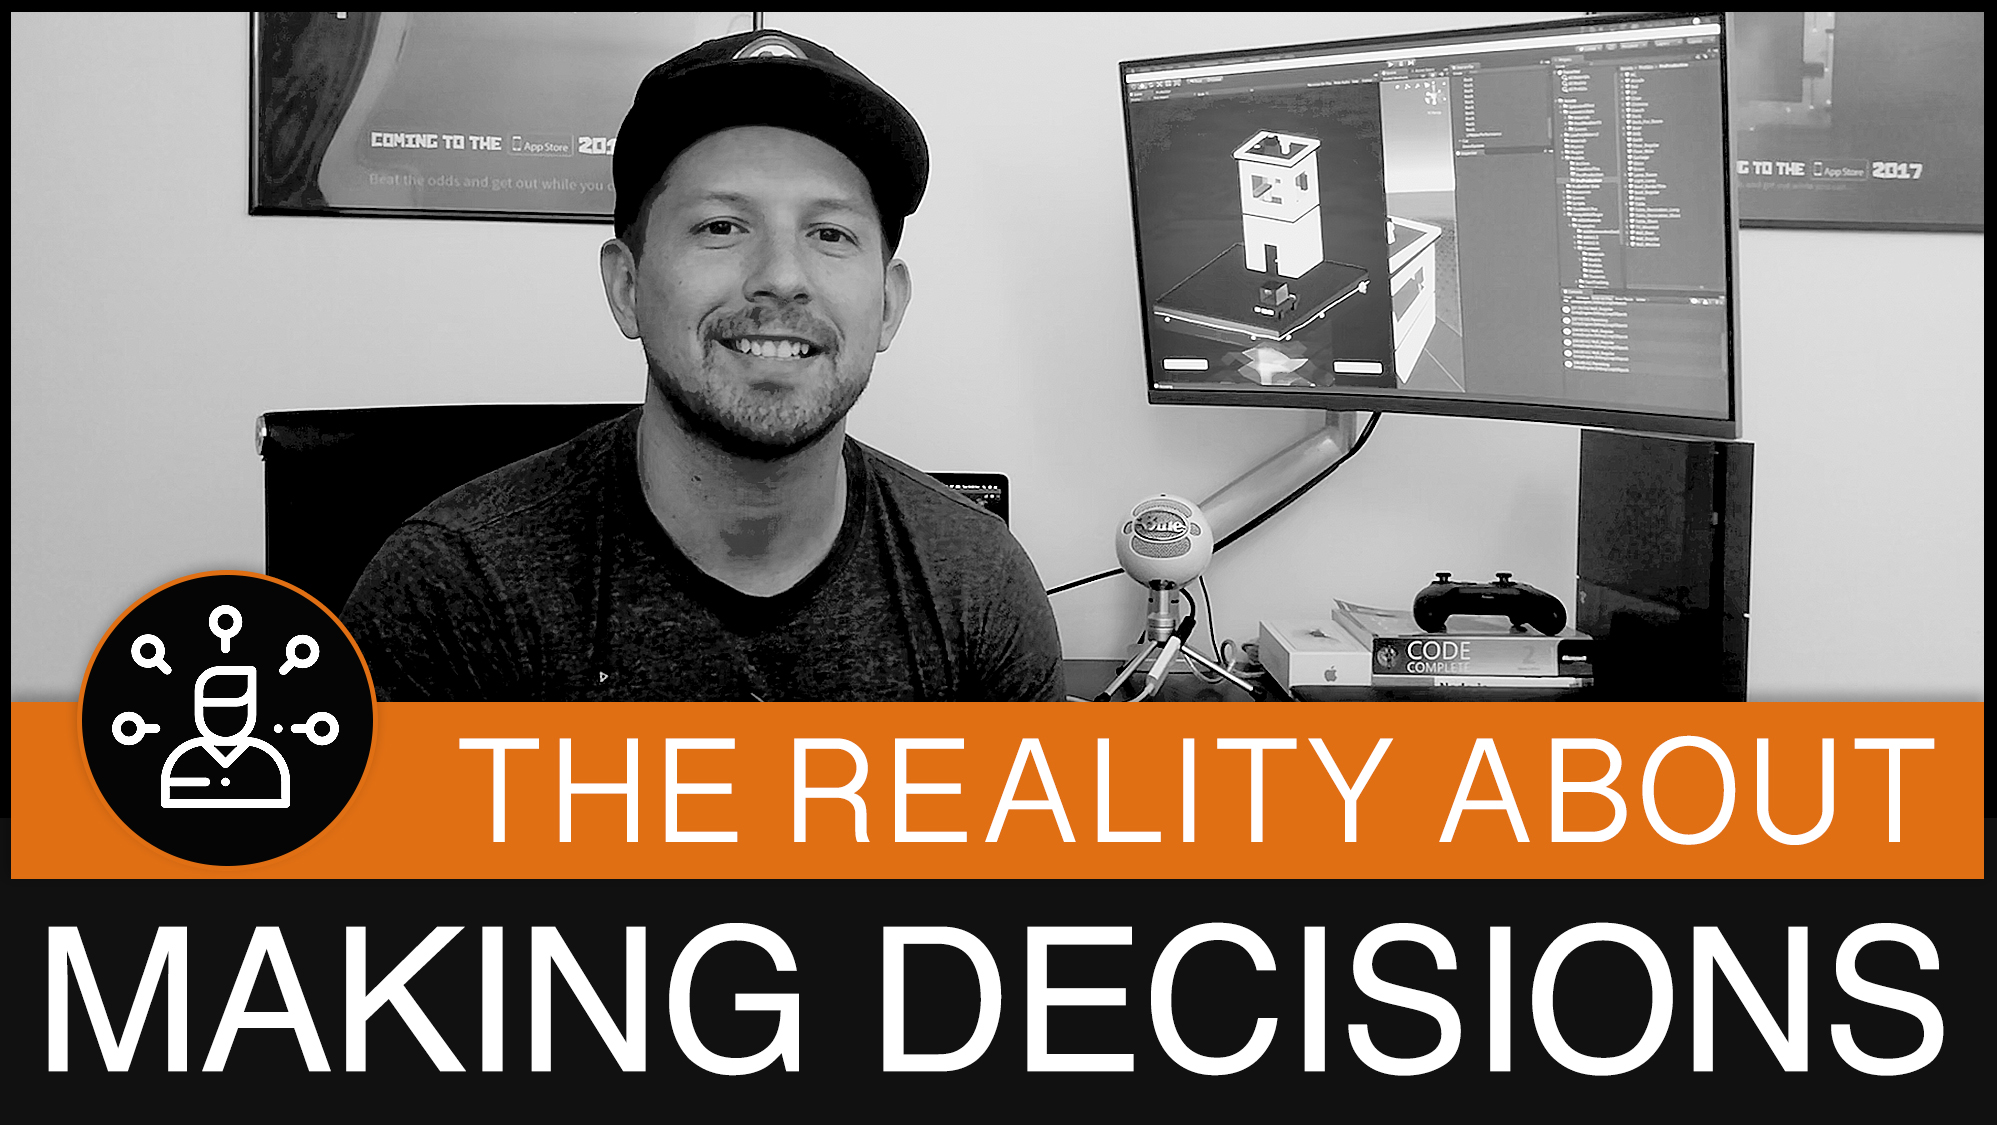 The reality about making decisions as an indie game developer